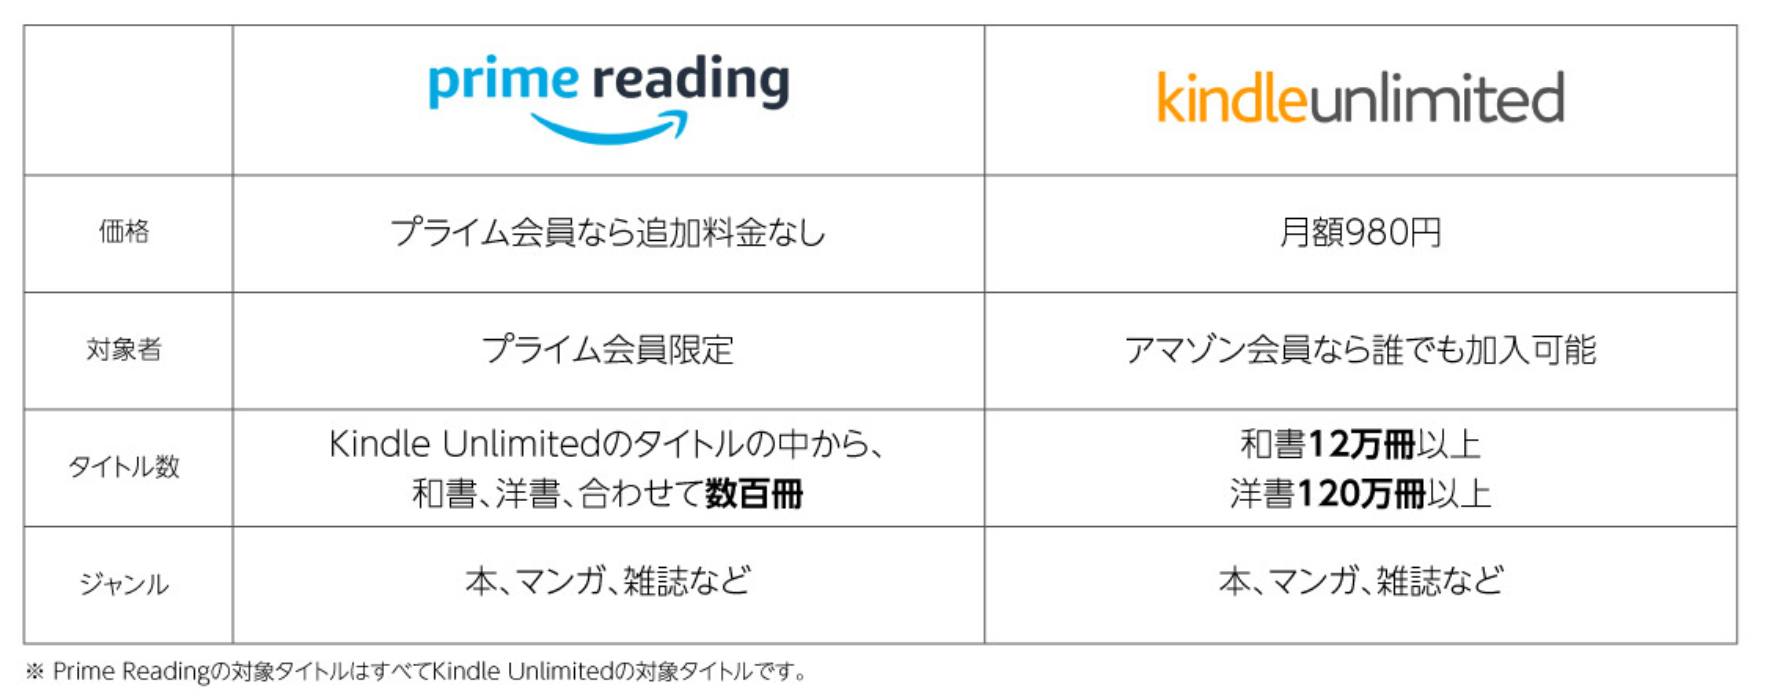 Kindle UnlimitedとPrime Readingの違いを表示した画像